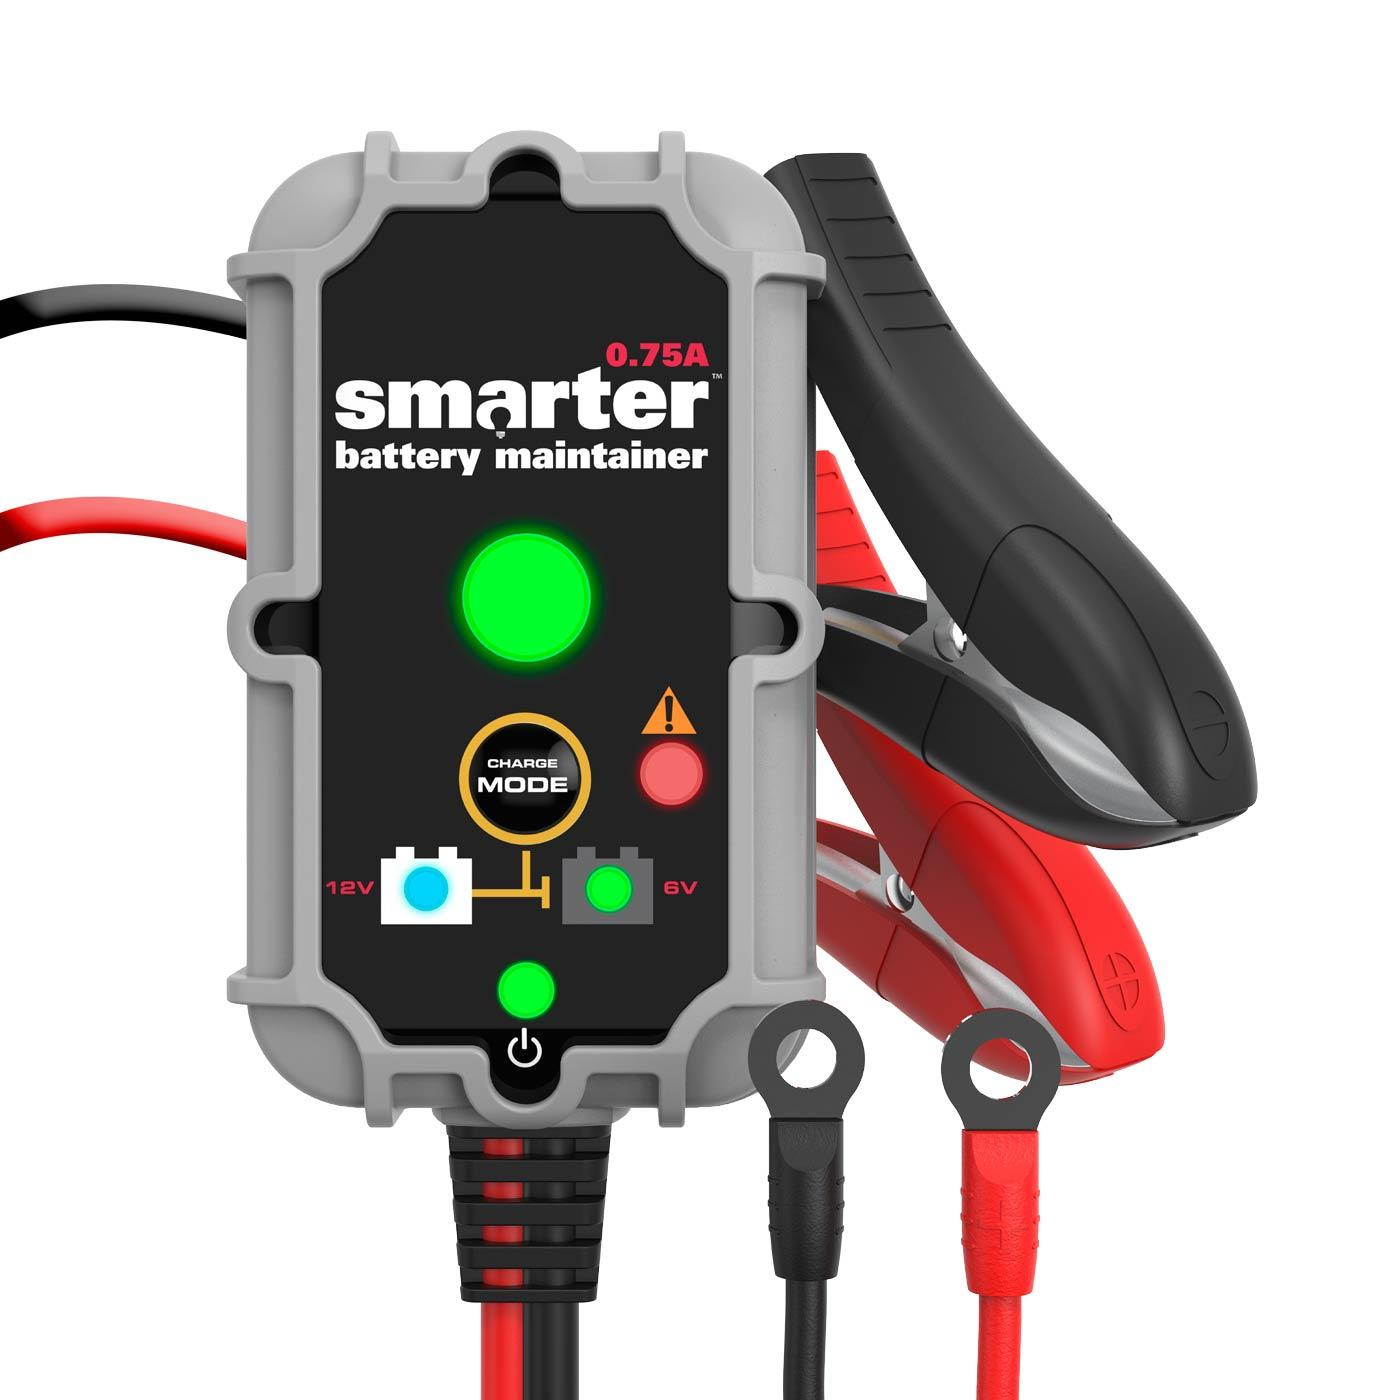 Smartech Ic 750 Smarter 075a 6 12v Trickle Battery Charger 6v Wiring Diagram Mgctlbxnmzp Mgctlbxv525 Mgctlbxlc